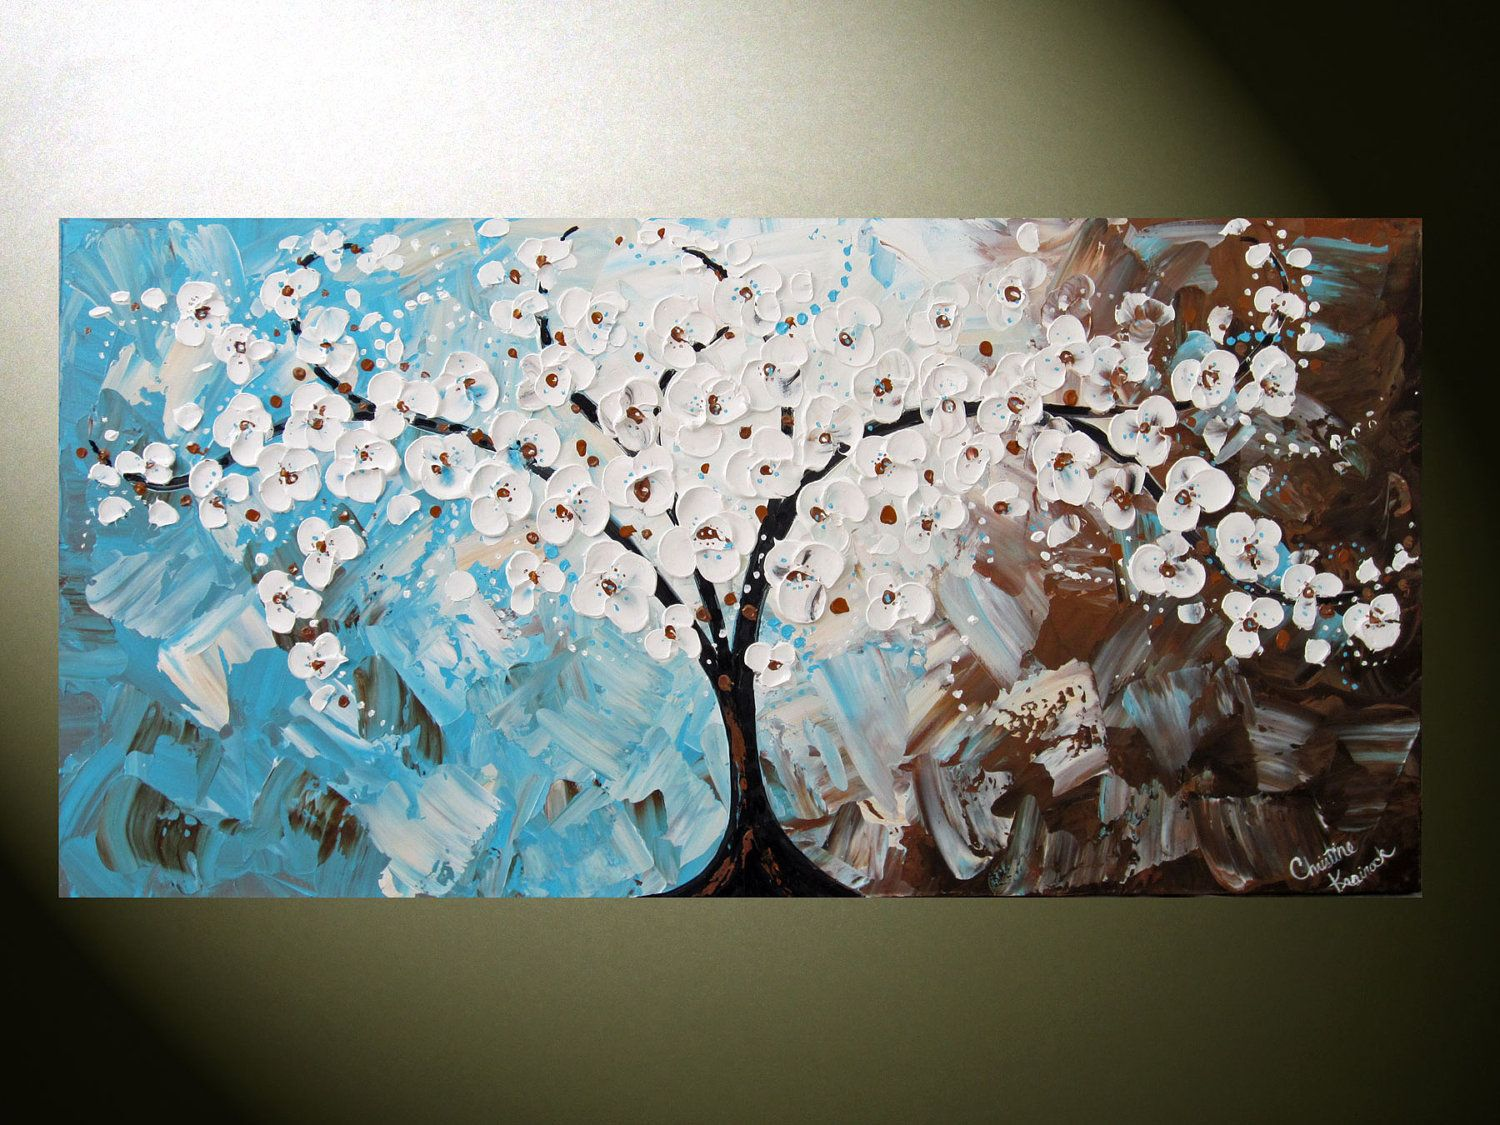 Blue and Brown Cherry Blossom Tree, would look awesome in our living room